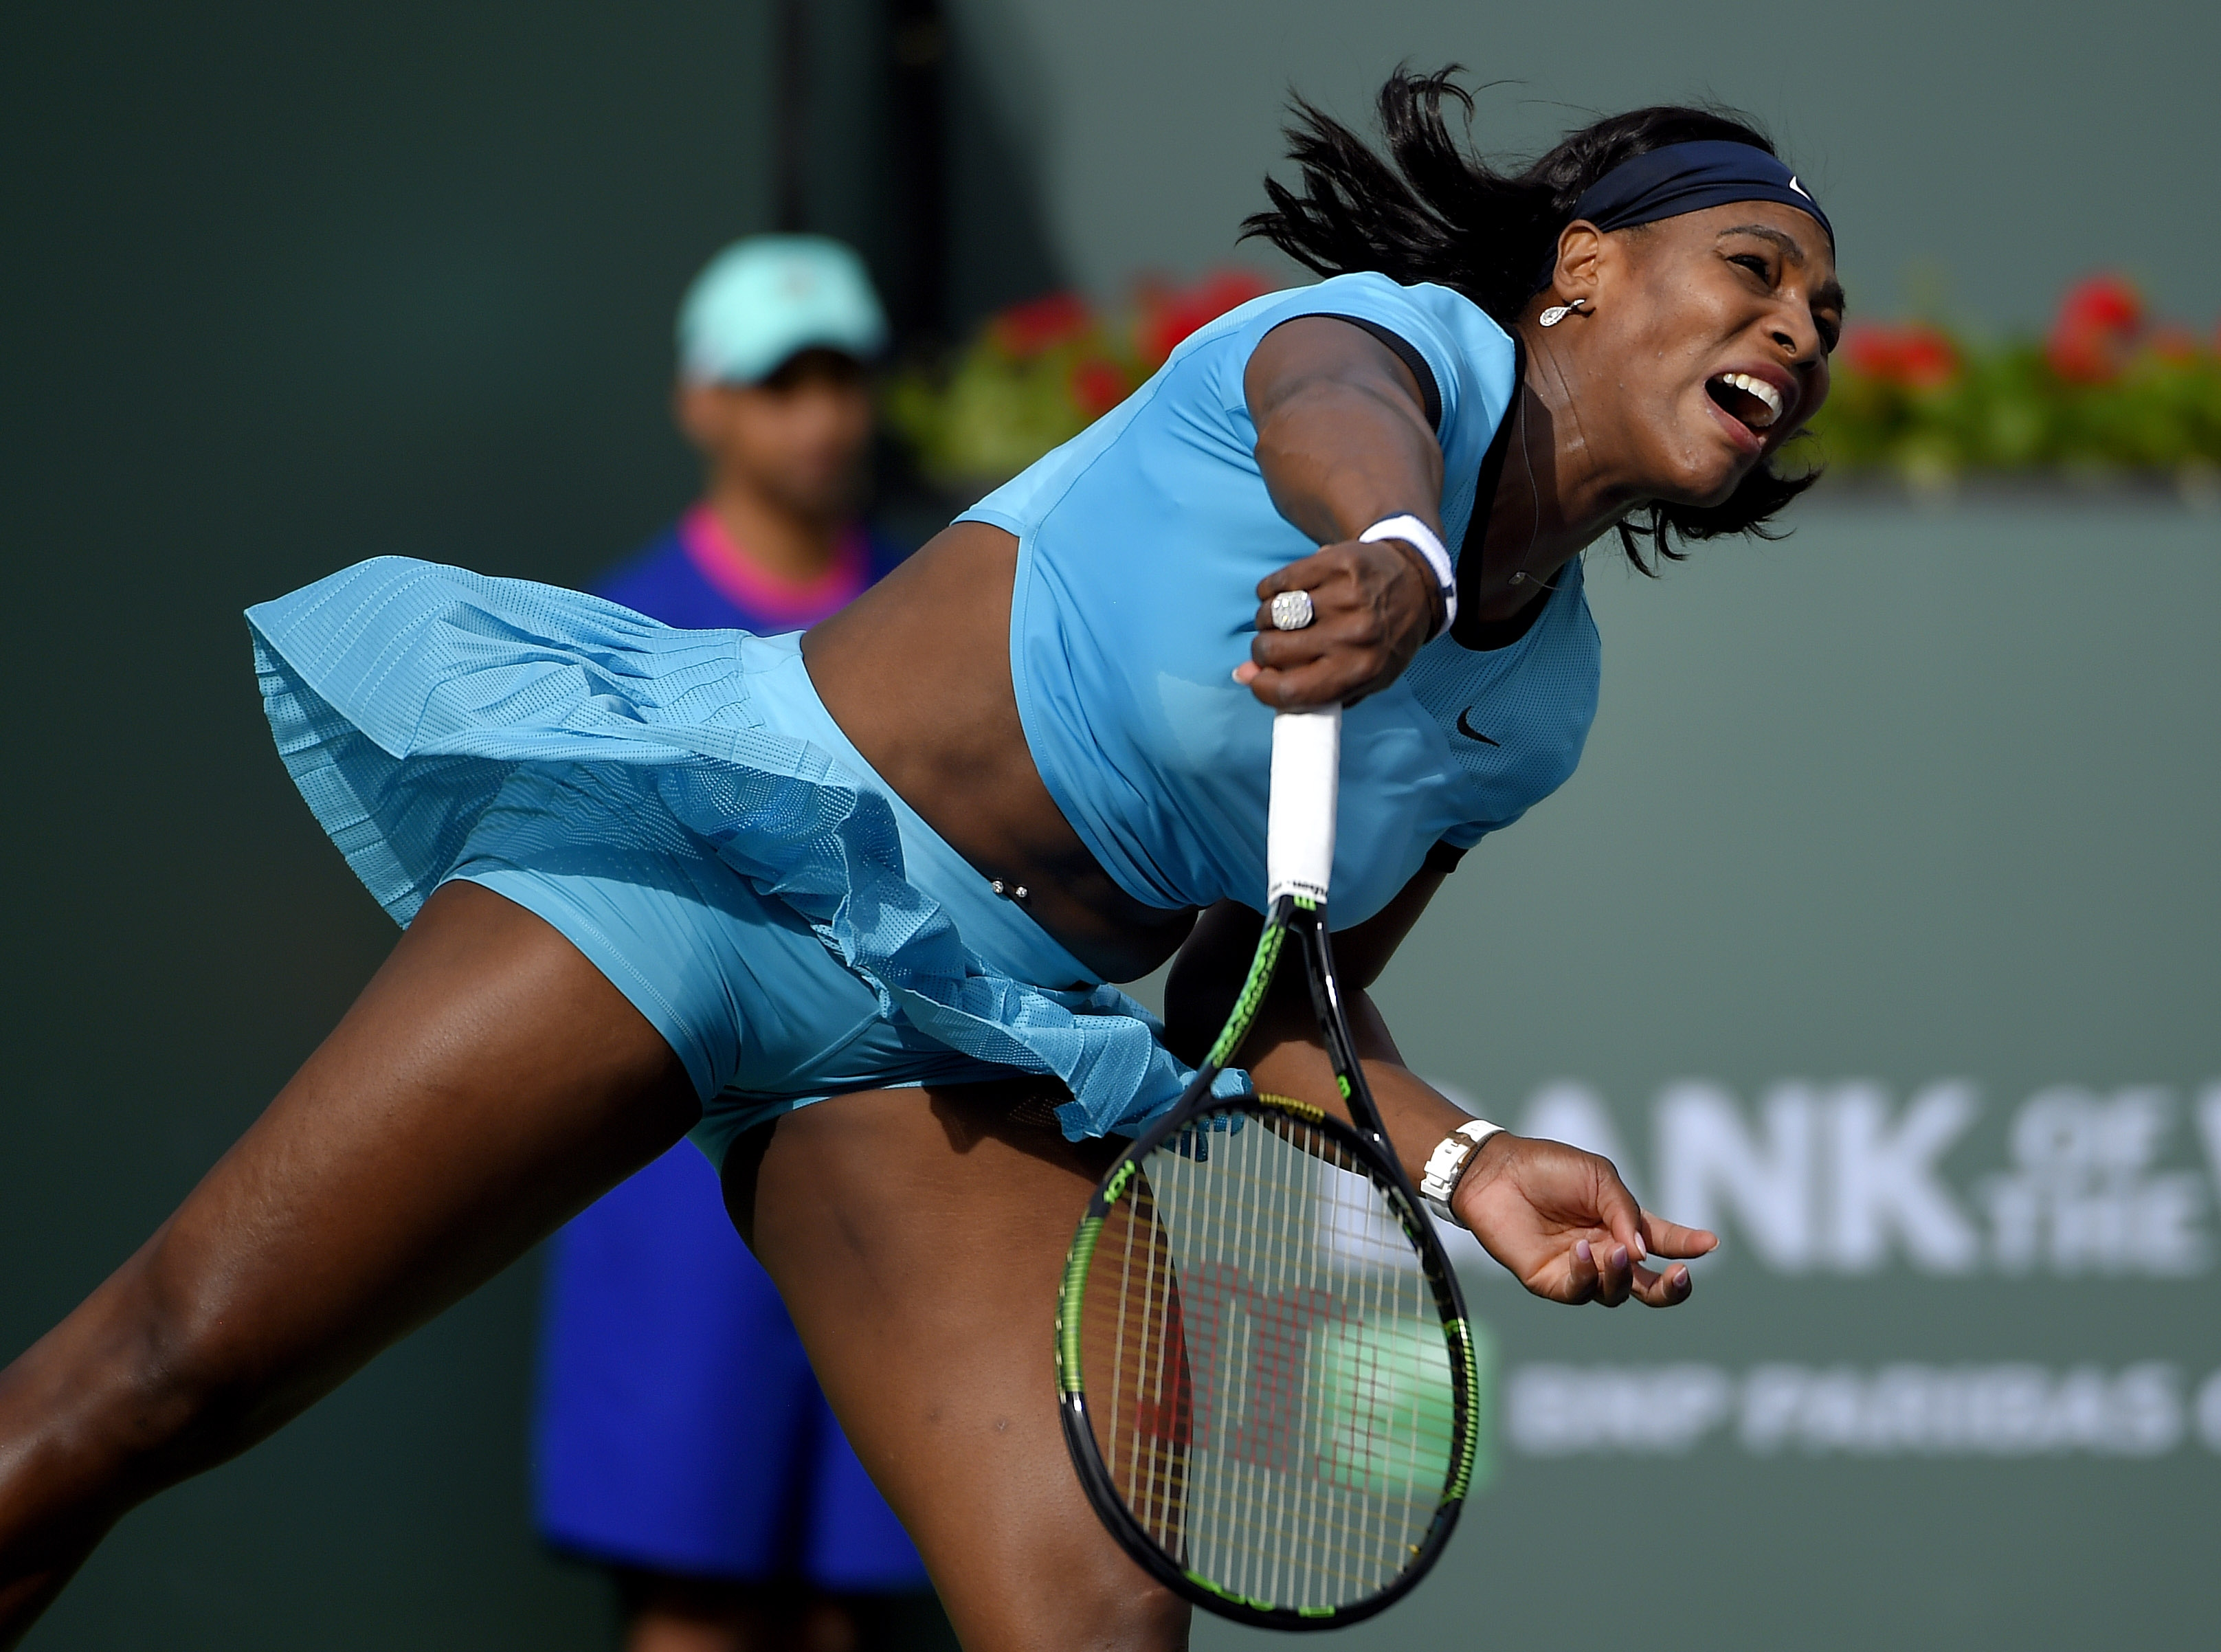 Serena Williams serves to Yulia Putintseva during their match at the BNP Paribas Open tennis tournament, Sunday, March 13, 2016, in Indian Wells, Calif. (AP Photo/Mark J. Terrill)